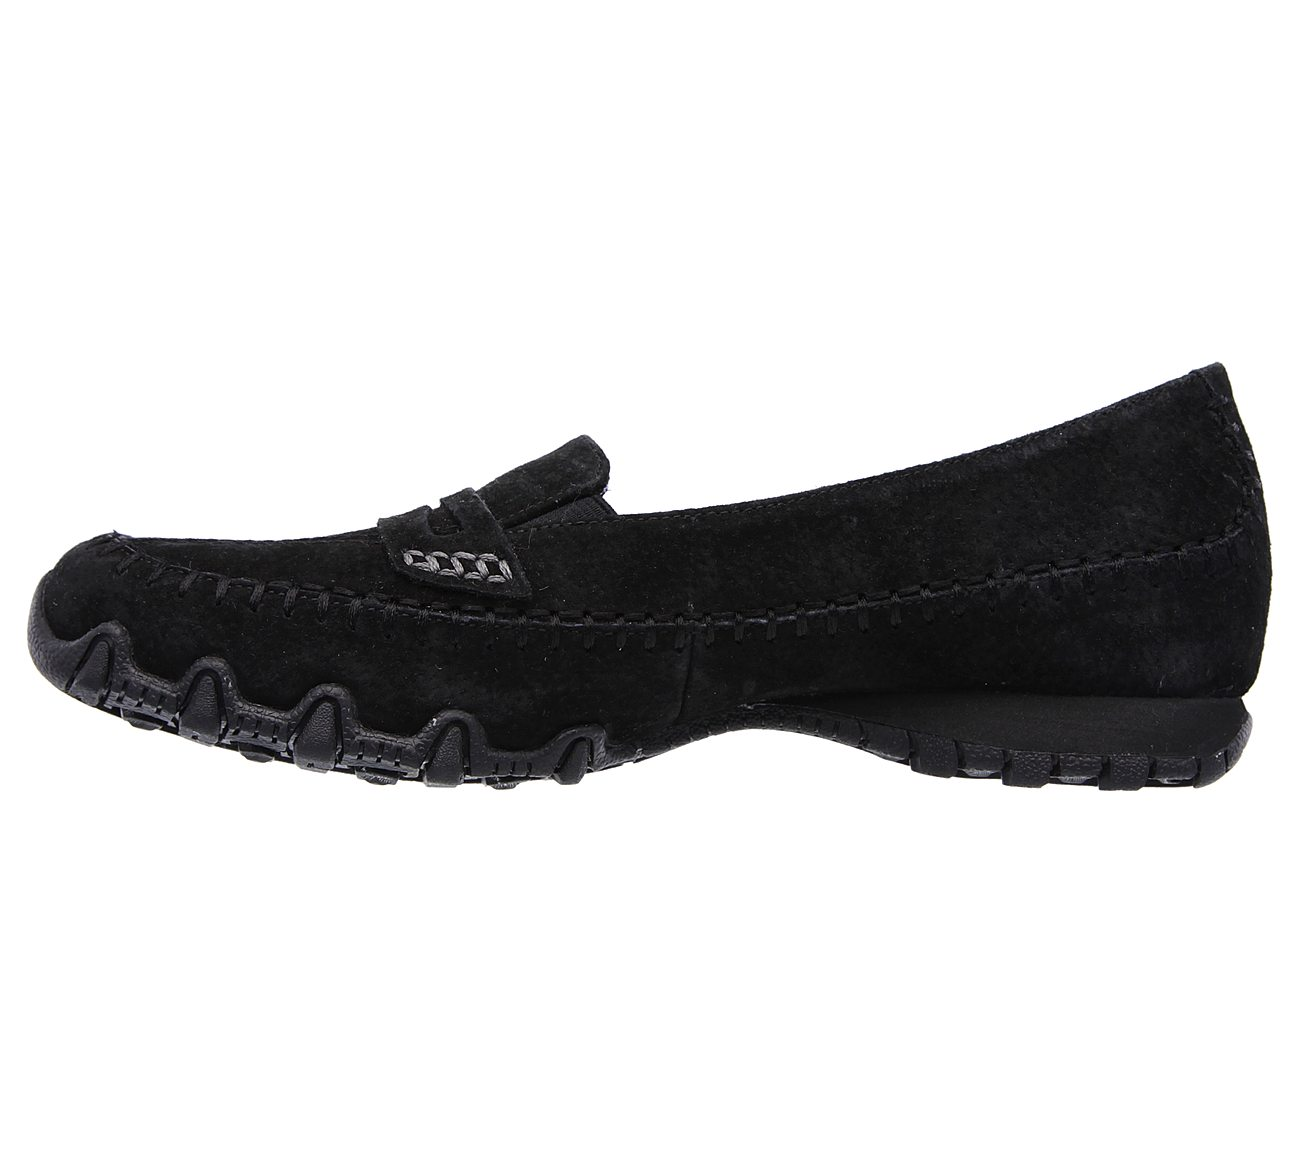 8bee76a94e4 Buy SKECHERS Relaxed Fit  Bikers - Penny Lane Modern Comfort Shoes ...